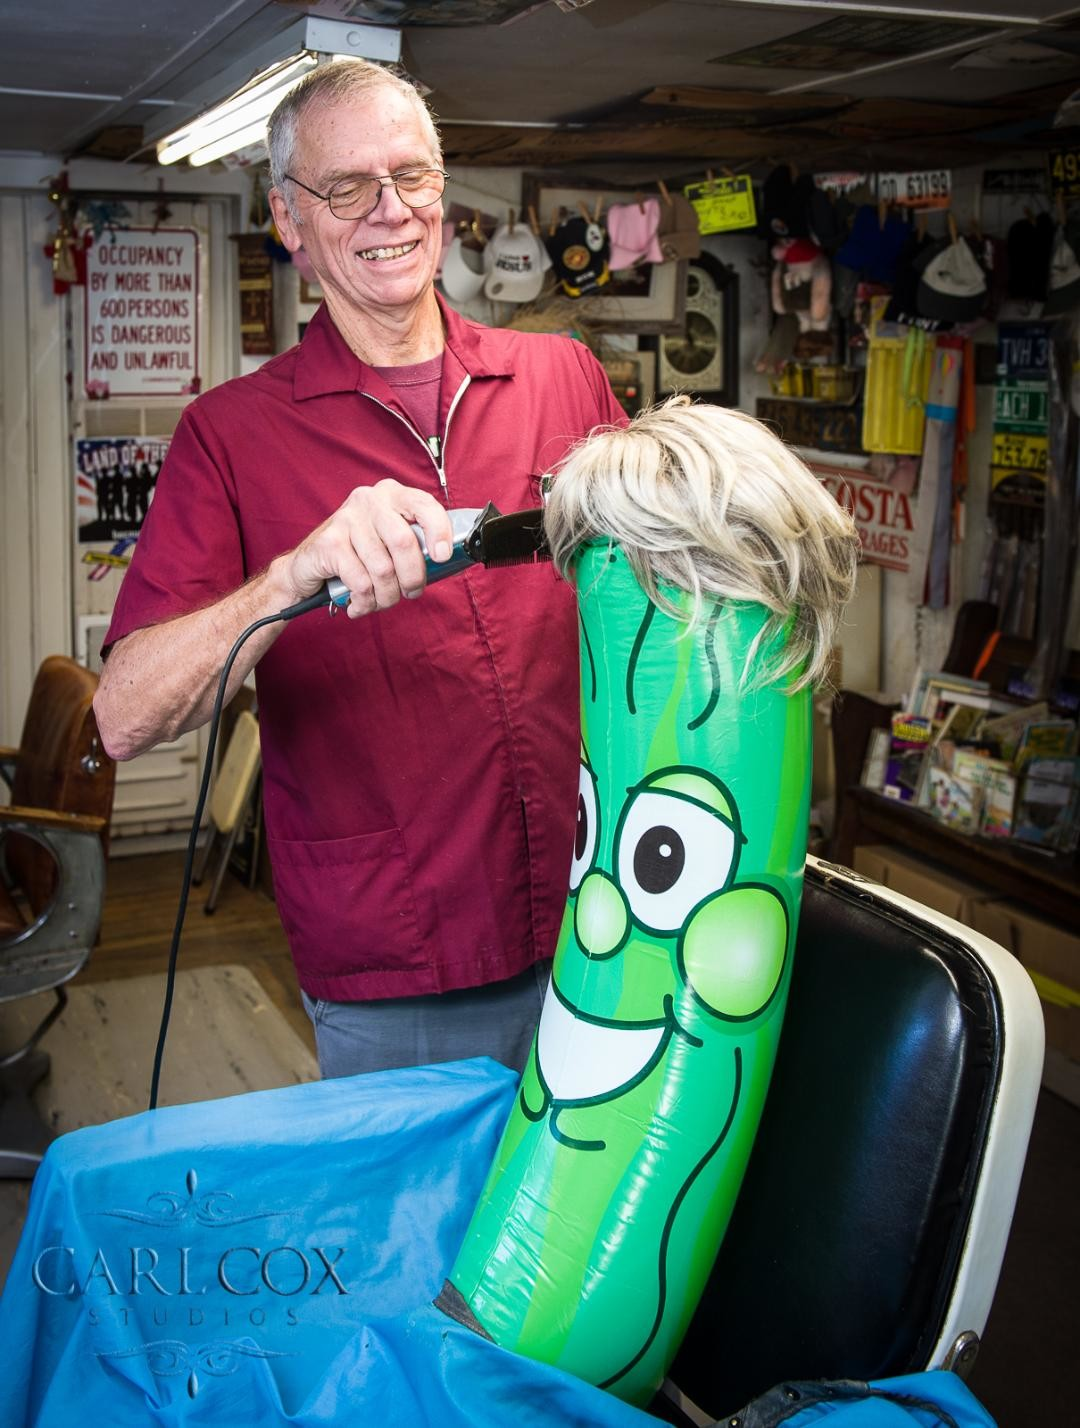 Bill Brooks gives Mr. Pickle a trim in preparation for the Pickle Fest event.